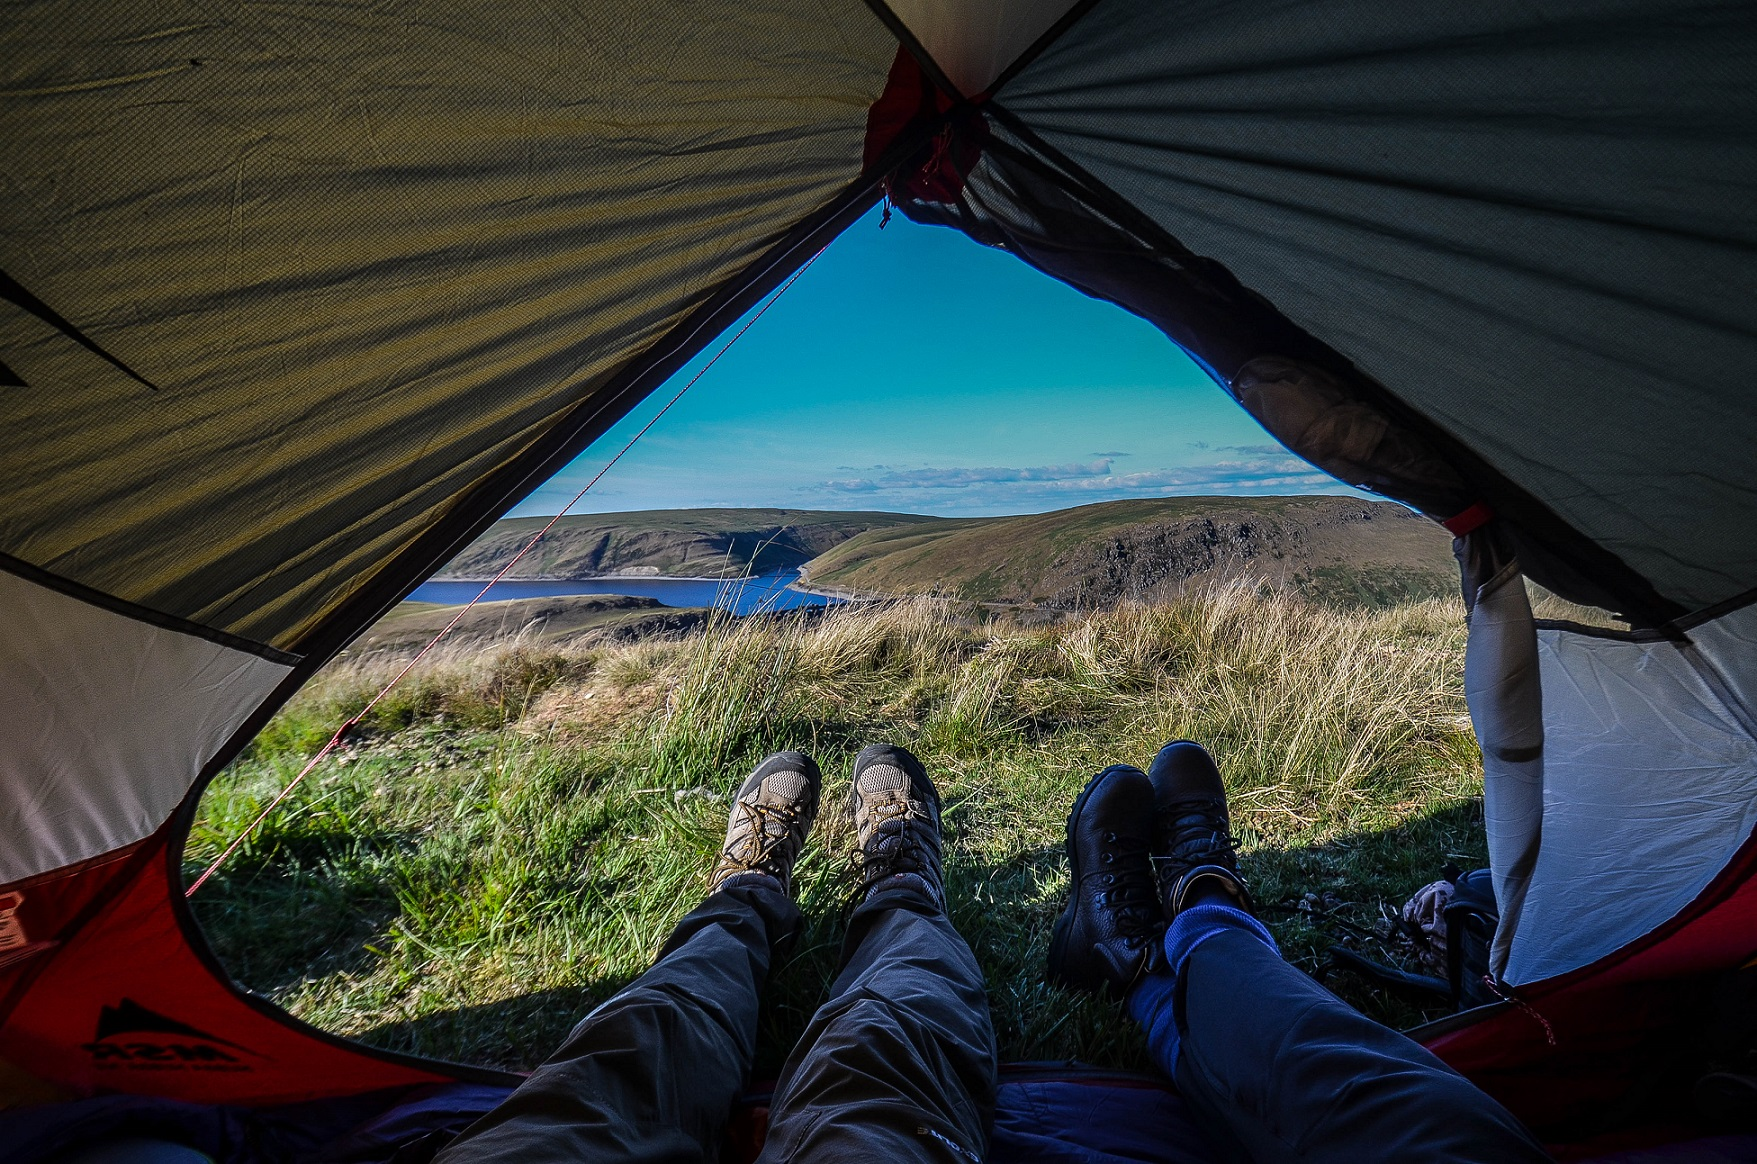 The view of wild camping @henwickcharlie | Land Rover Explore